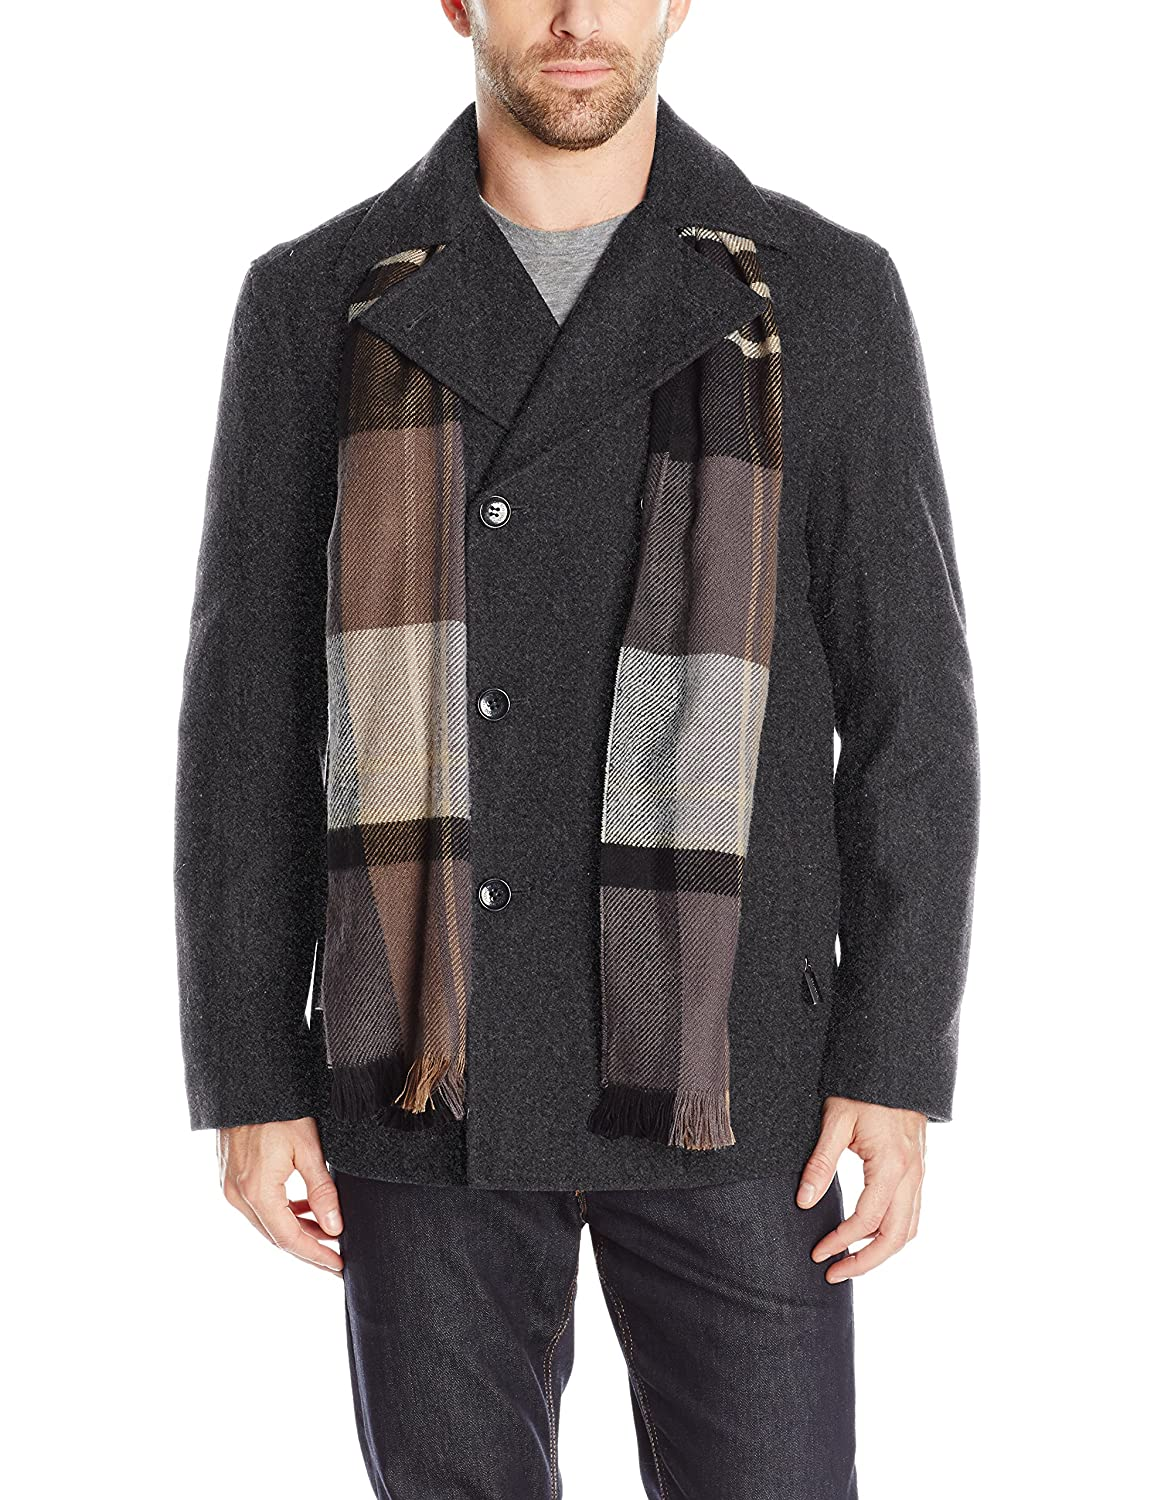 London Fog Wool Blend Double Breasted Pea Coat L15066